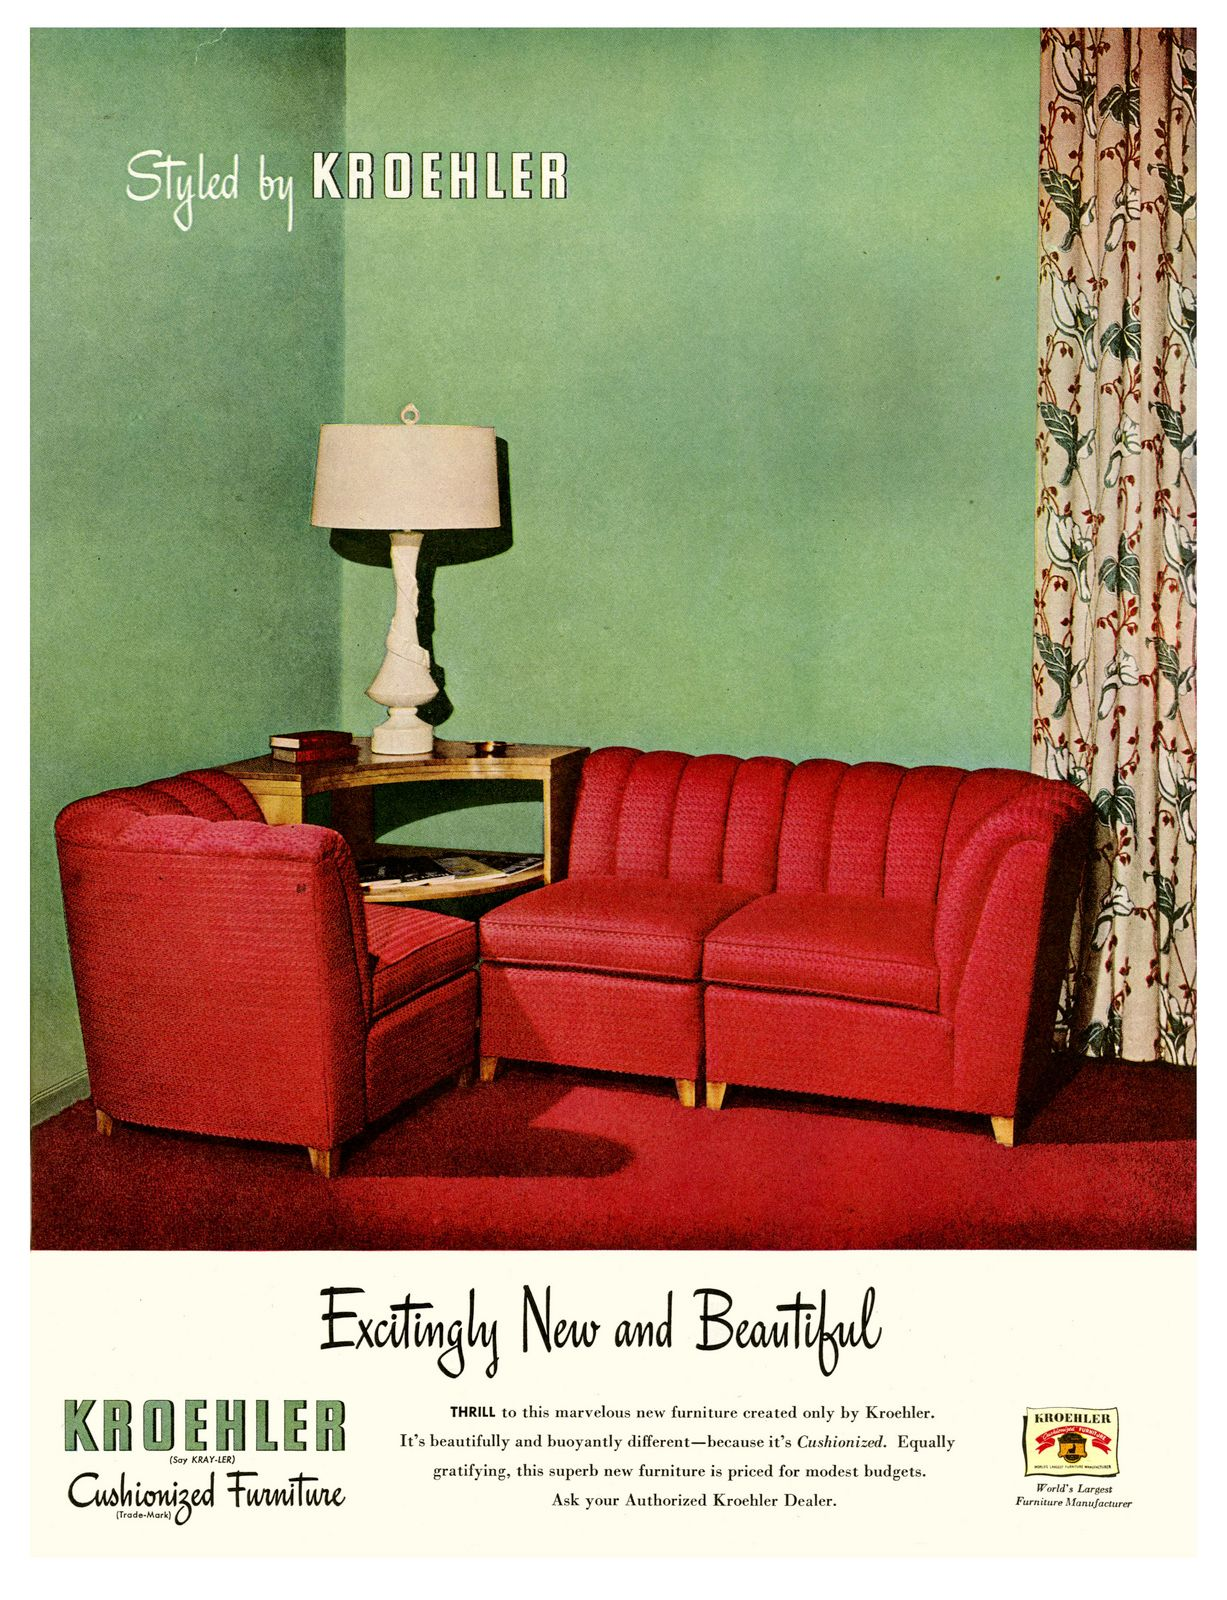 1947 Cushionized Furniture By Kroehler Furniture Prices Mid